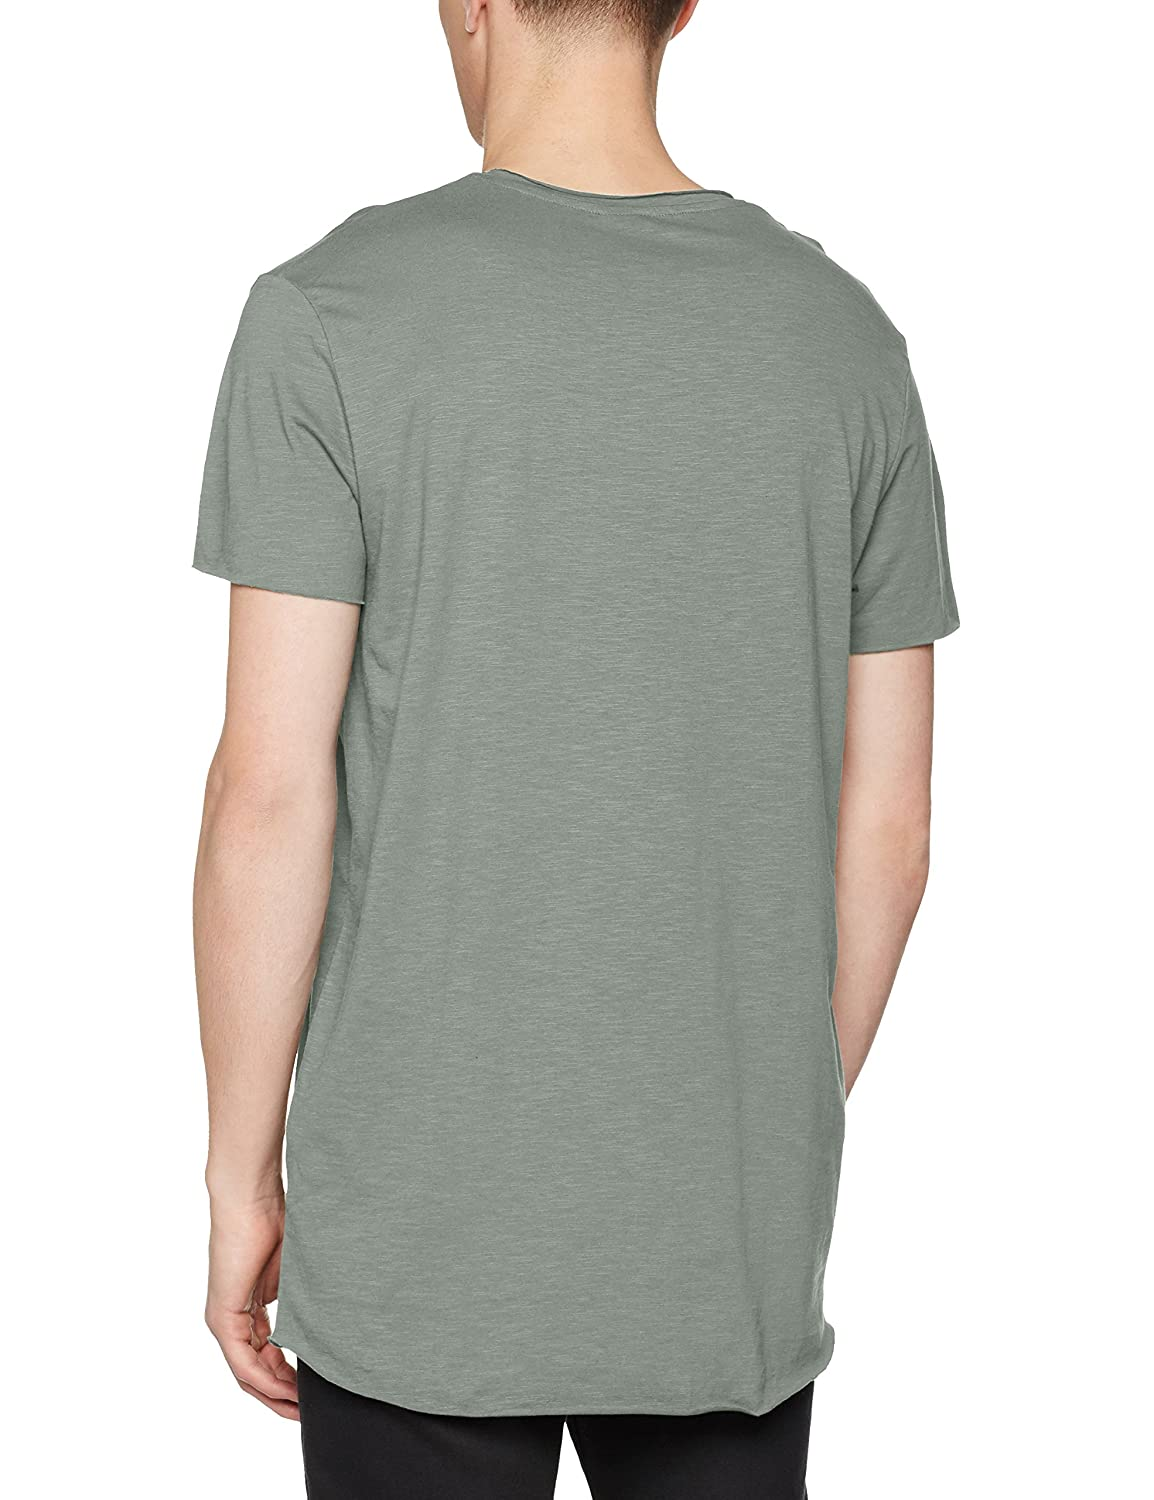 JACK & JONES Herren T-Shirt Jorbas Tee SS U-Neck Noos: Jack & Jones:  Amazon.de: Bekleidung